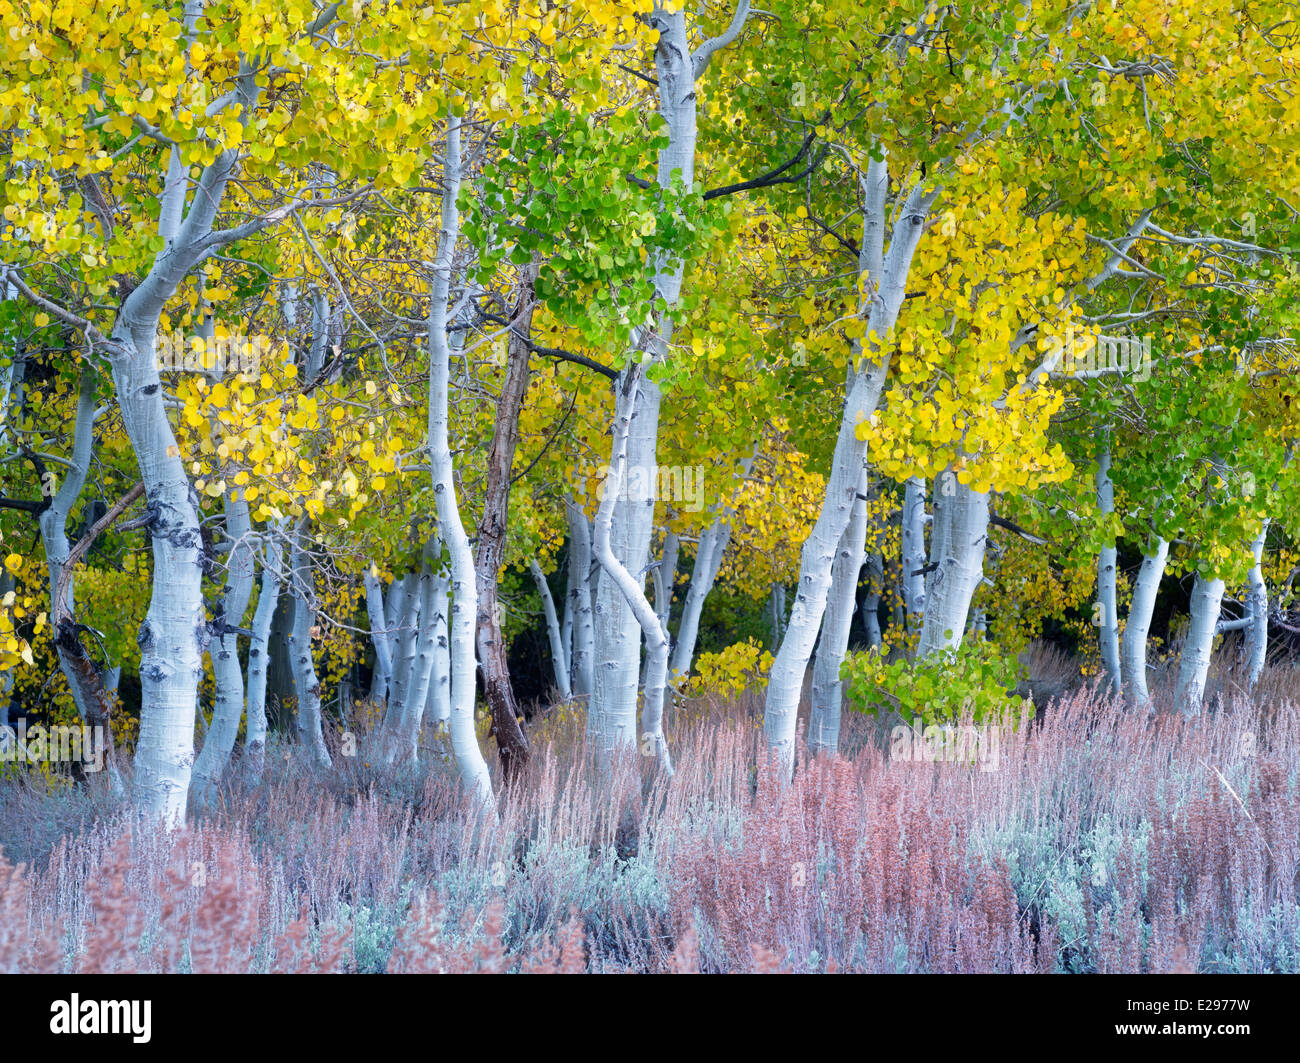 Fall colored aspens and sagebrush. Eastern Sierra Nevada mountains, California - Stock Image